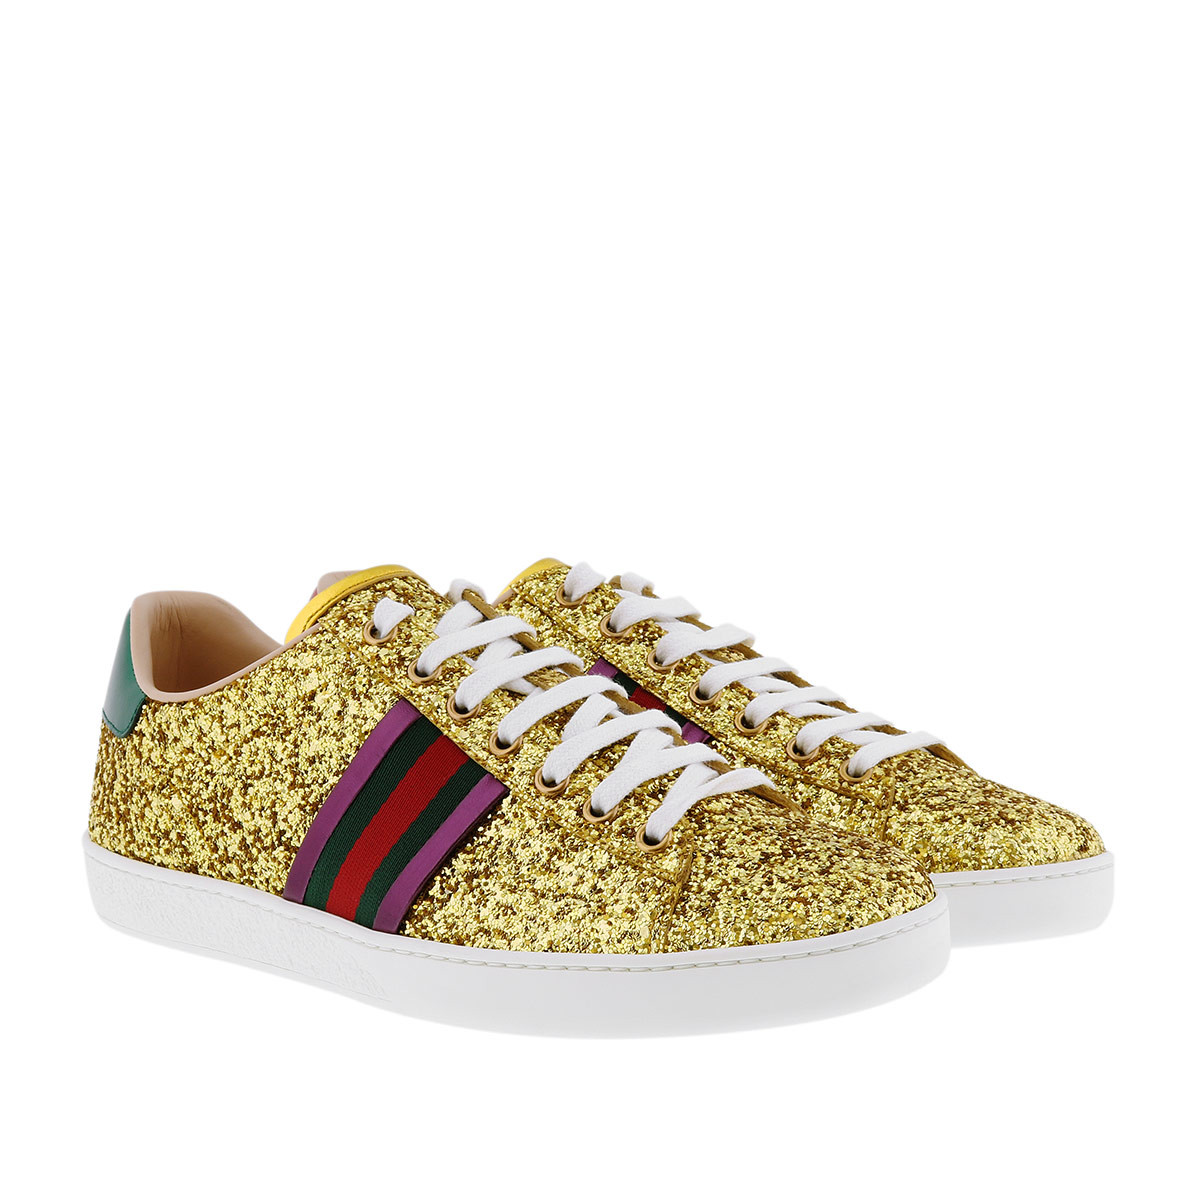 Gucci Sneakers - Crystal Sneaker Gold - in gold - für Damen